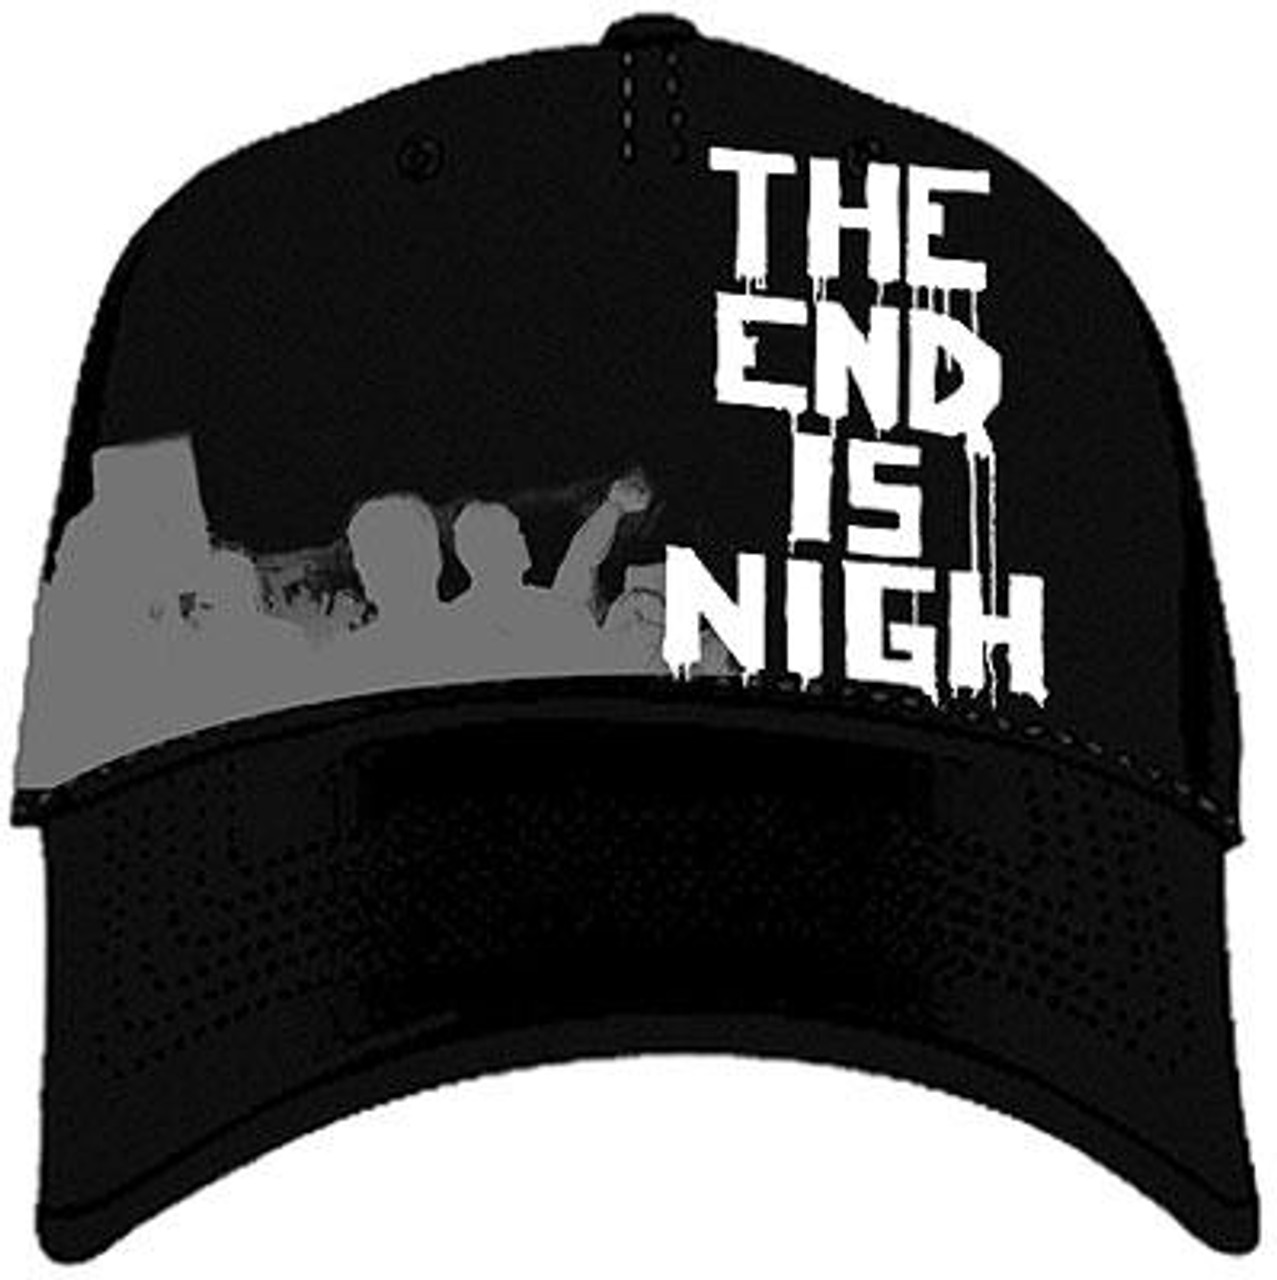 NECA Watchmen The End is Nigh Baseball Cap